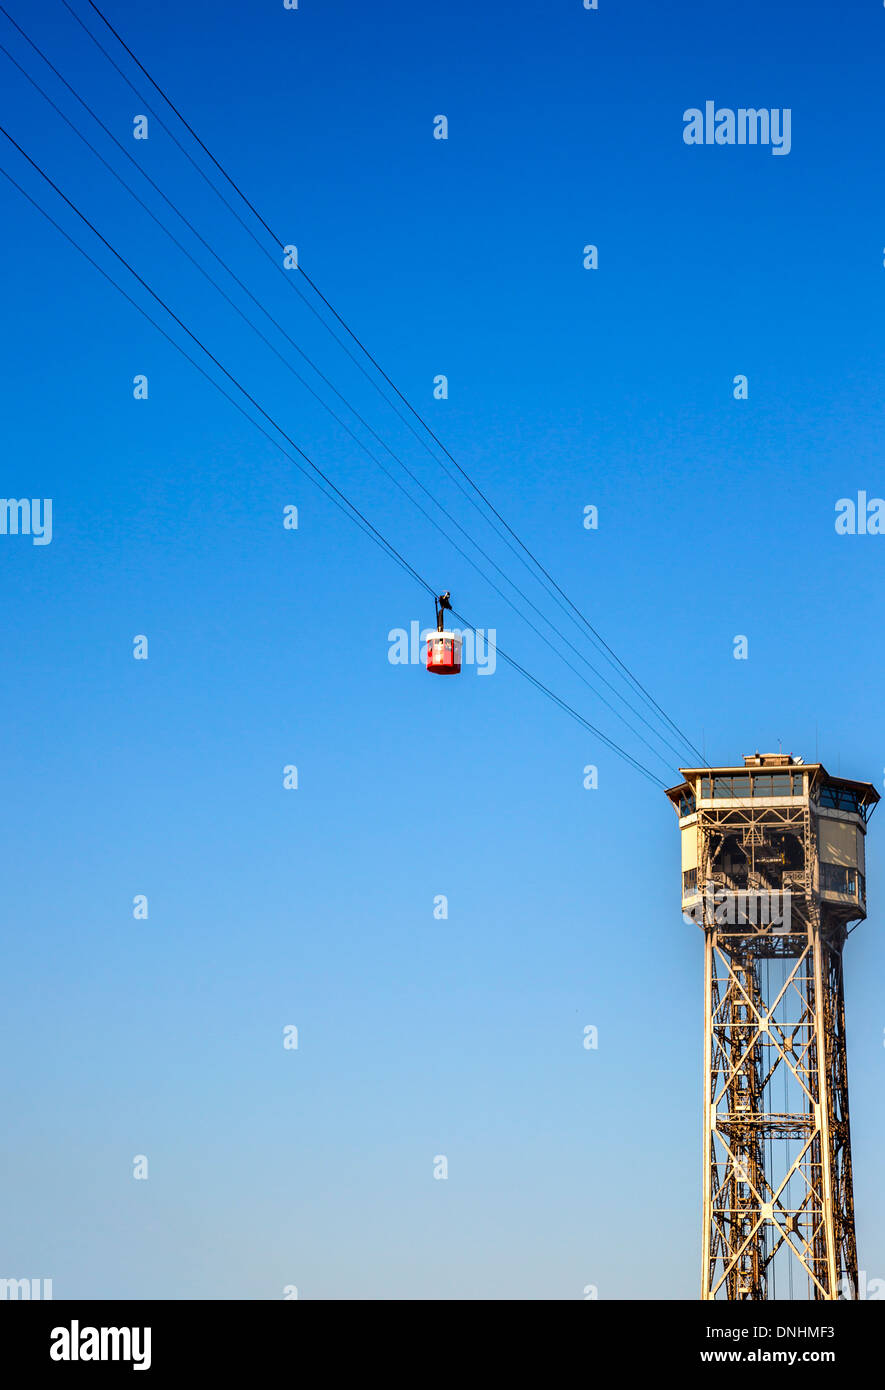 Low angle view of overhead cable car, Barcelone, Catalogne, Espagne Banque D'Images